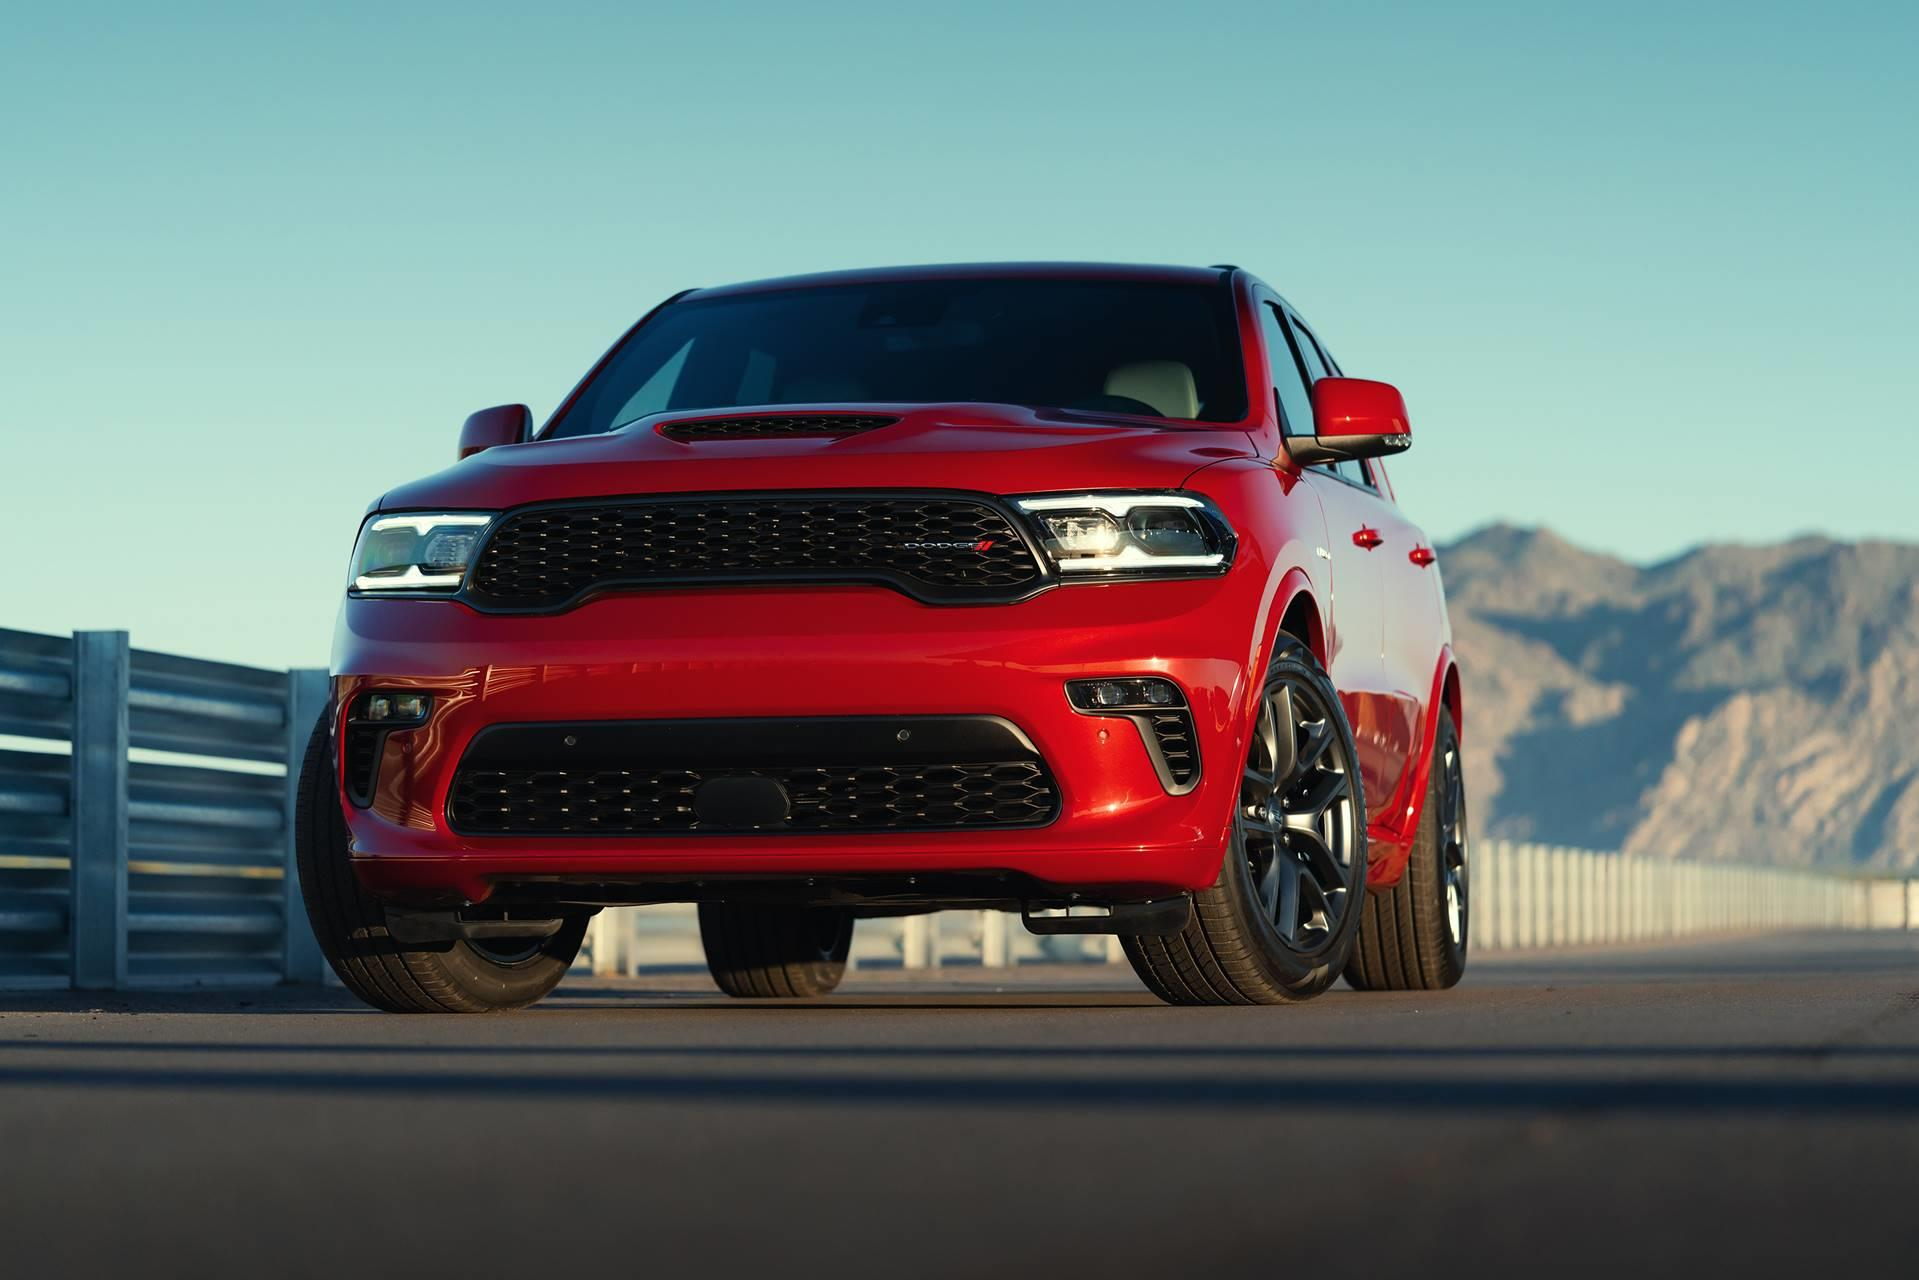 2021 Dodge Durango Srt Hellcat Wallpaper And Image Gallery